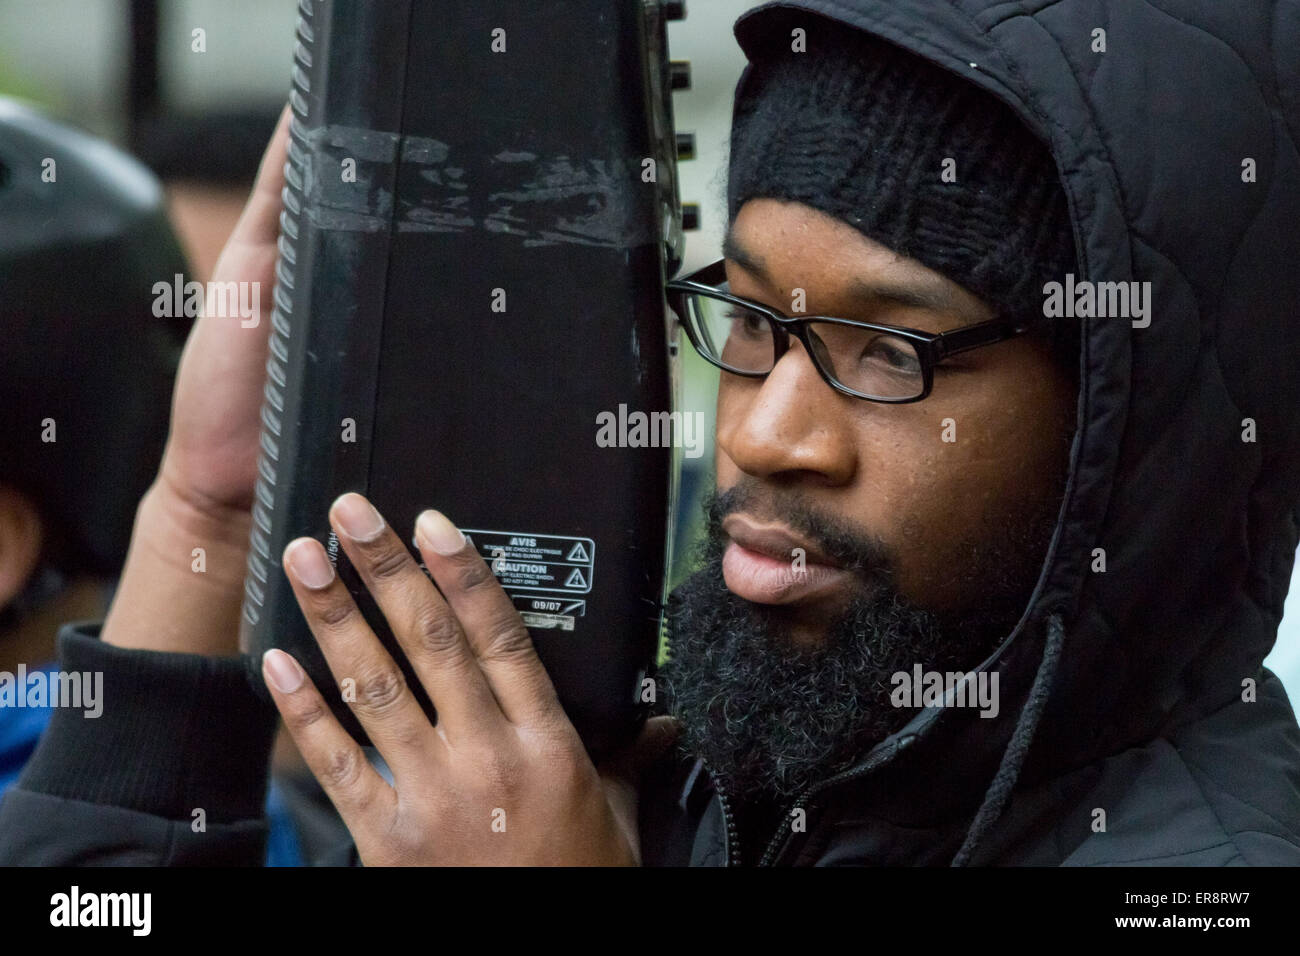 London, UK. 29th May, 2015. Islamist Ricardo McFarlane at a protest responce to the Queen's Speech Credit:  Guy - Stock Image